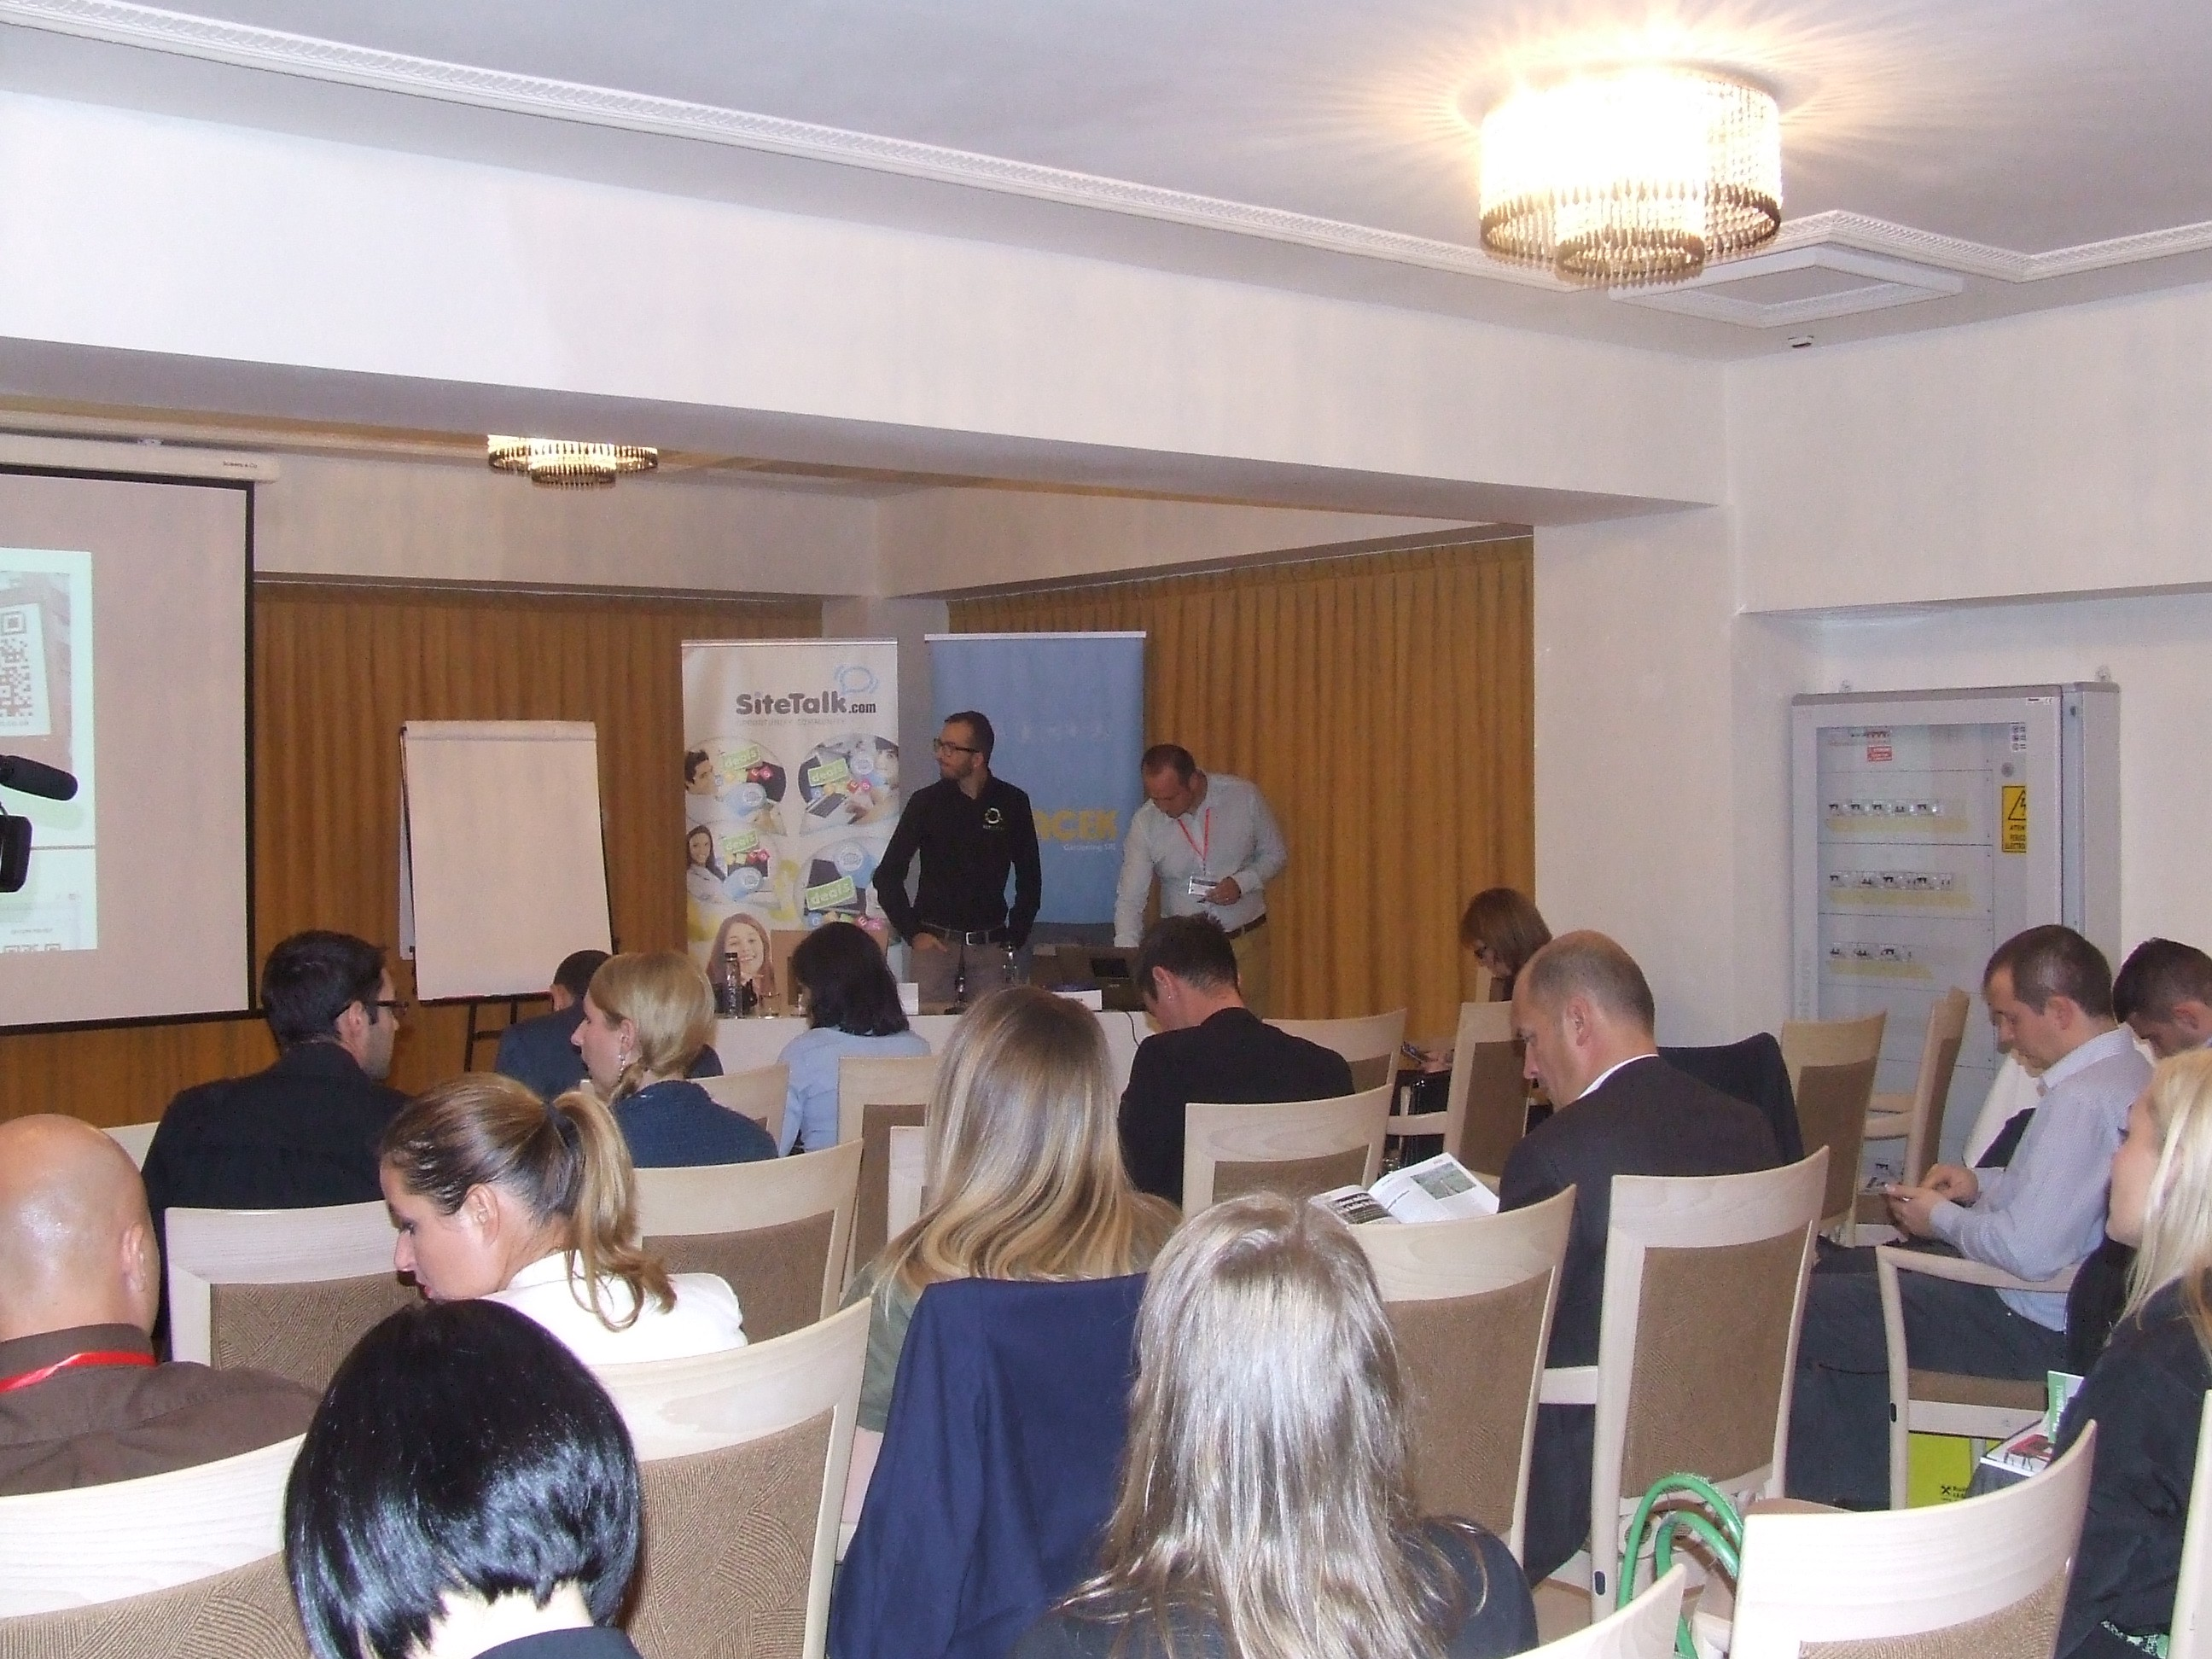 Adrian Niculescu speaking about social media marketing at Business Days in Cluj, Romania